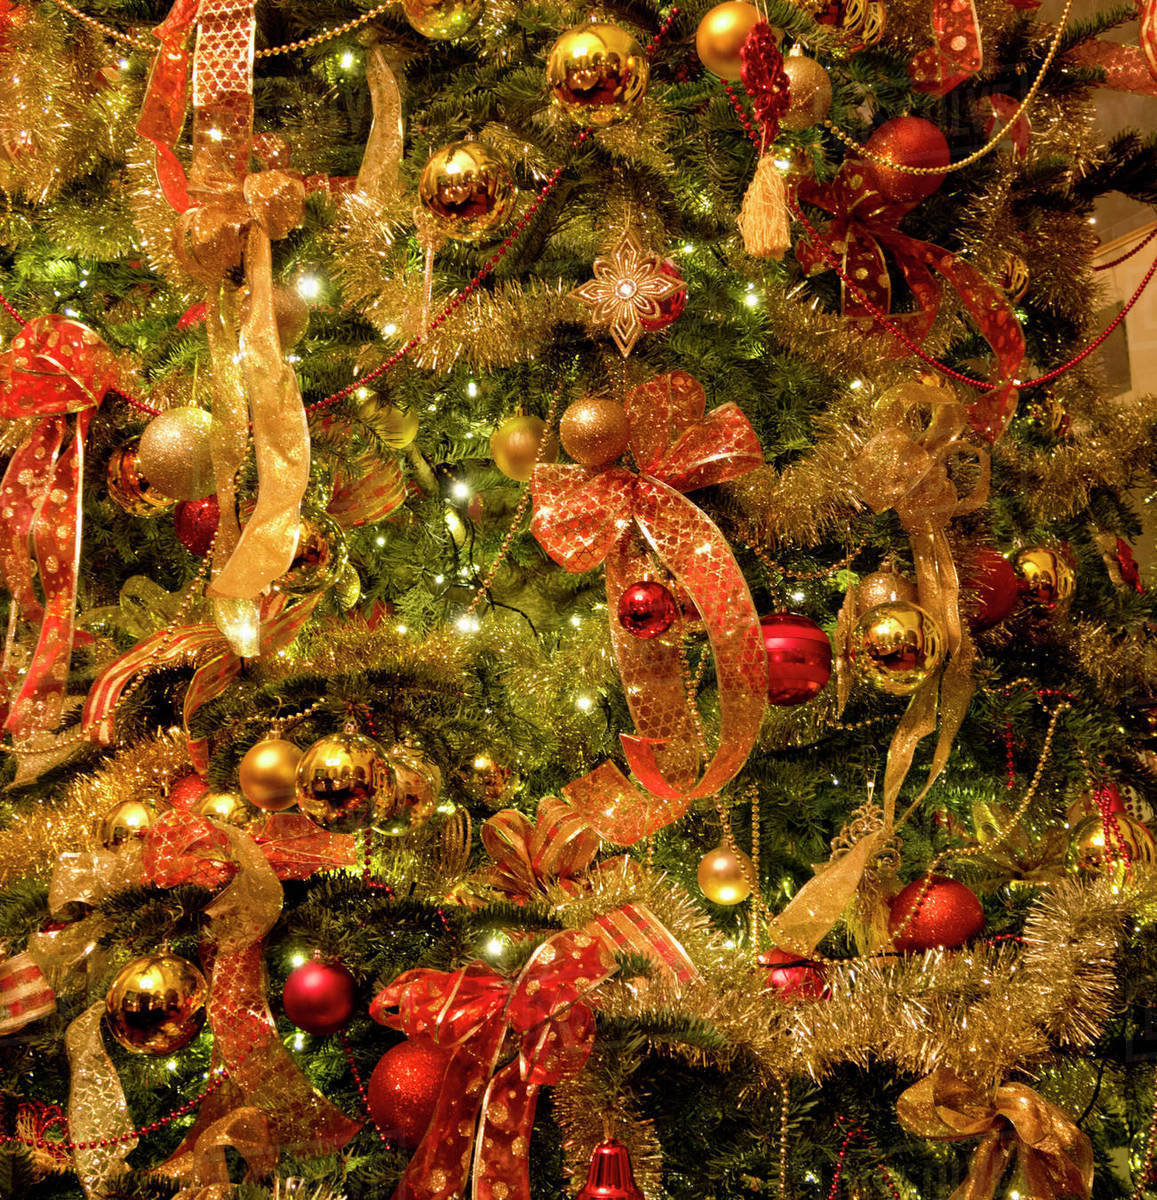 Full frame close up Christmas tree with ornaments and bow ...